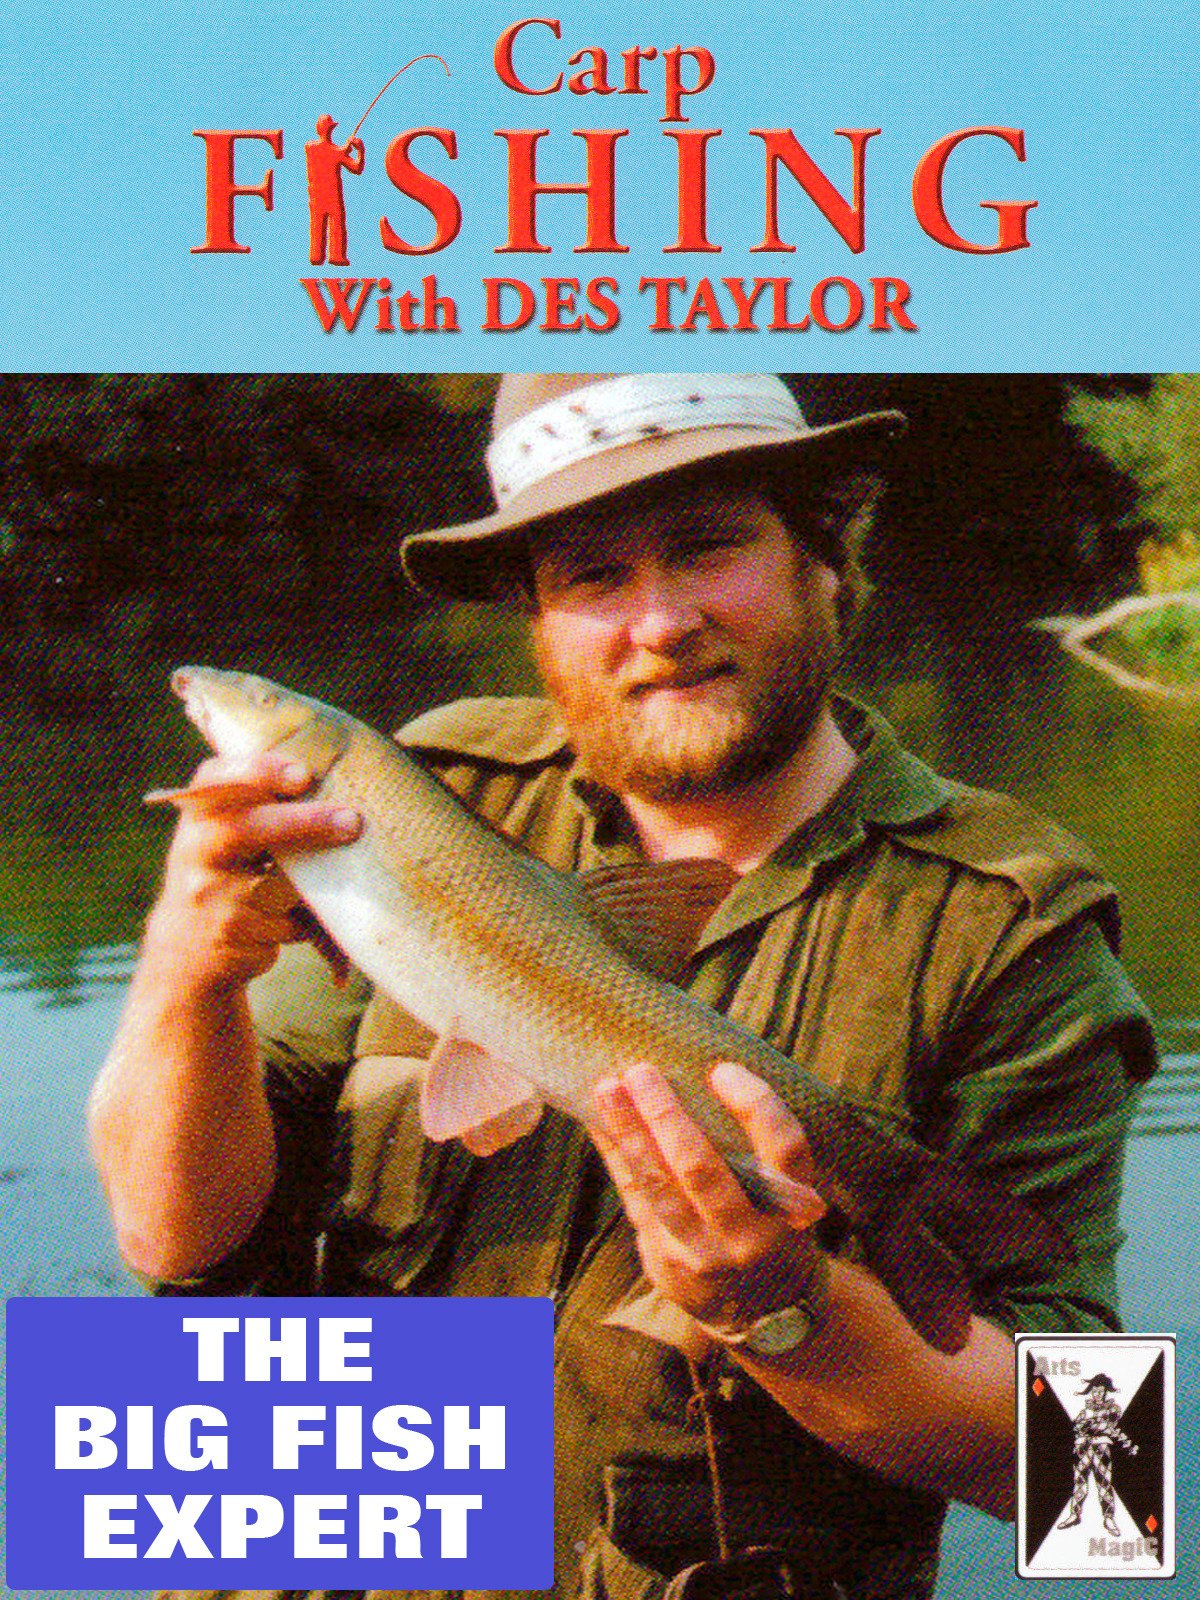 Carp Fishing with Des Taylor